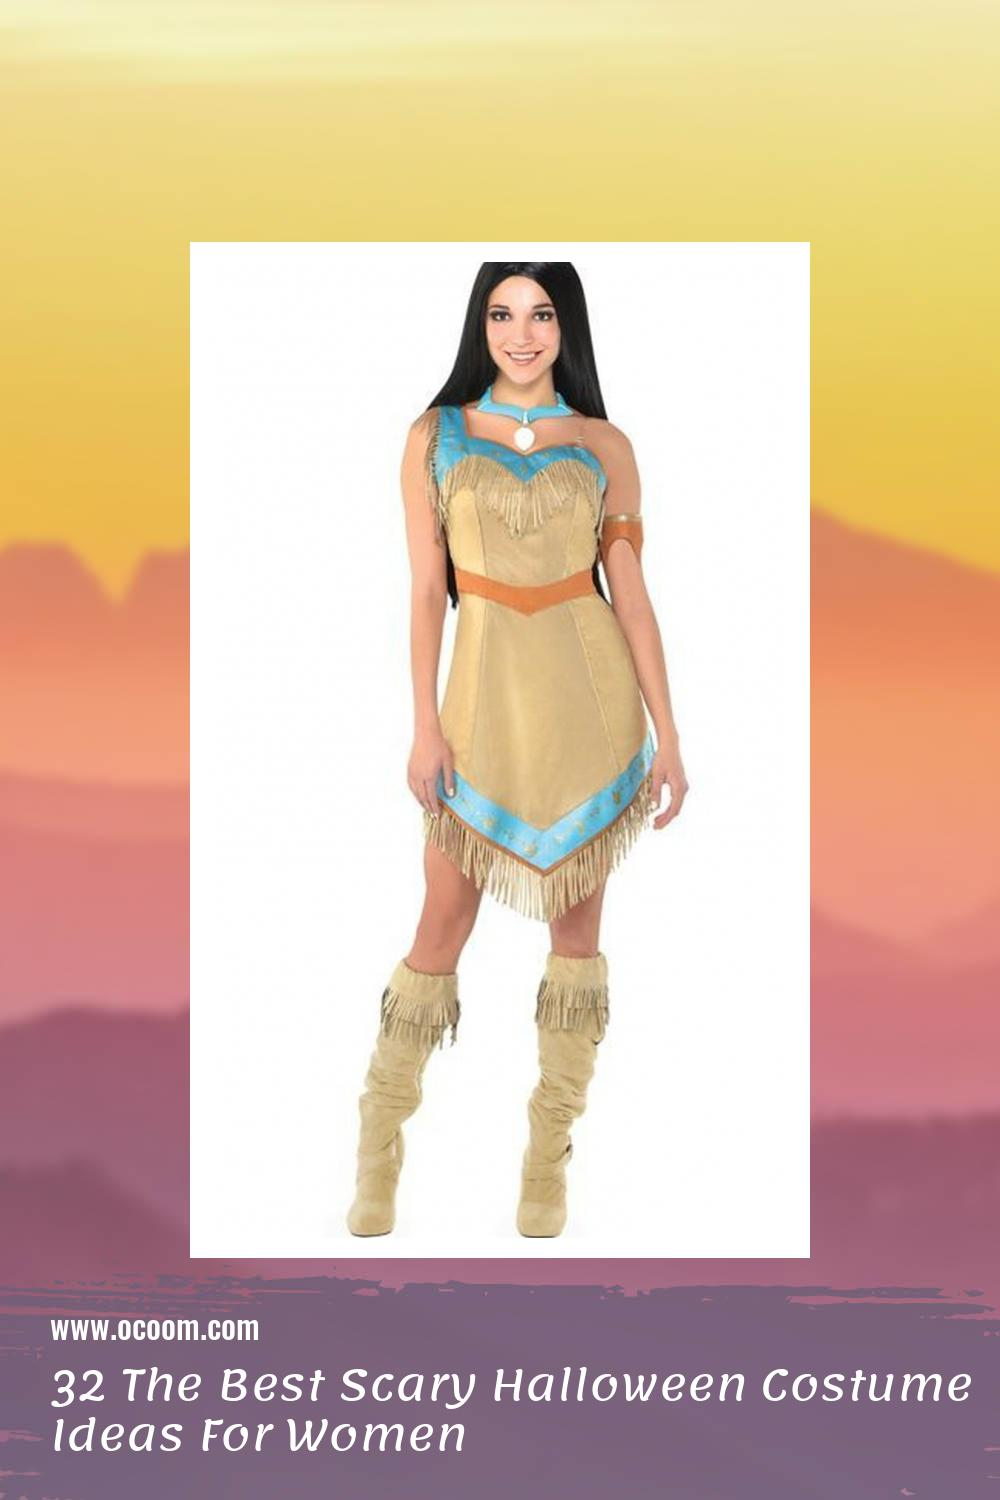 32 The Best Scary Halloween Costume Ideas For Women 63